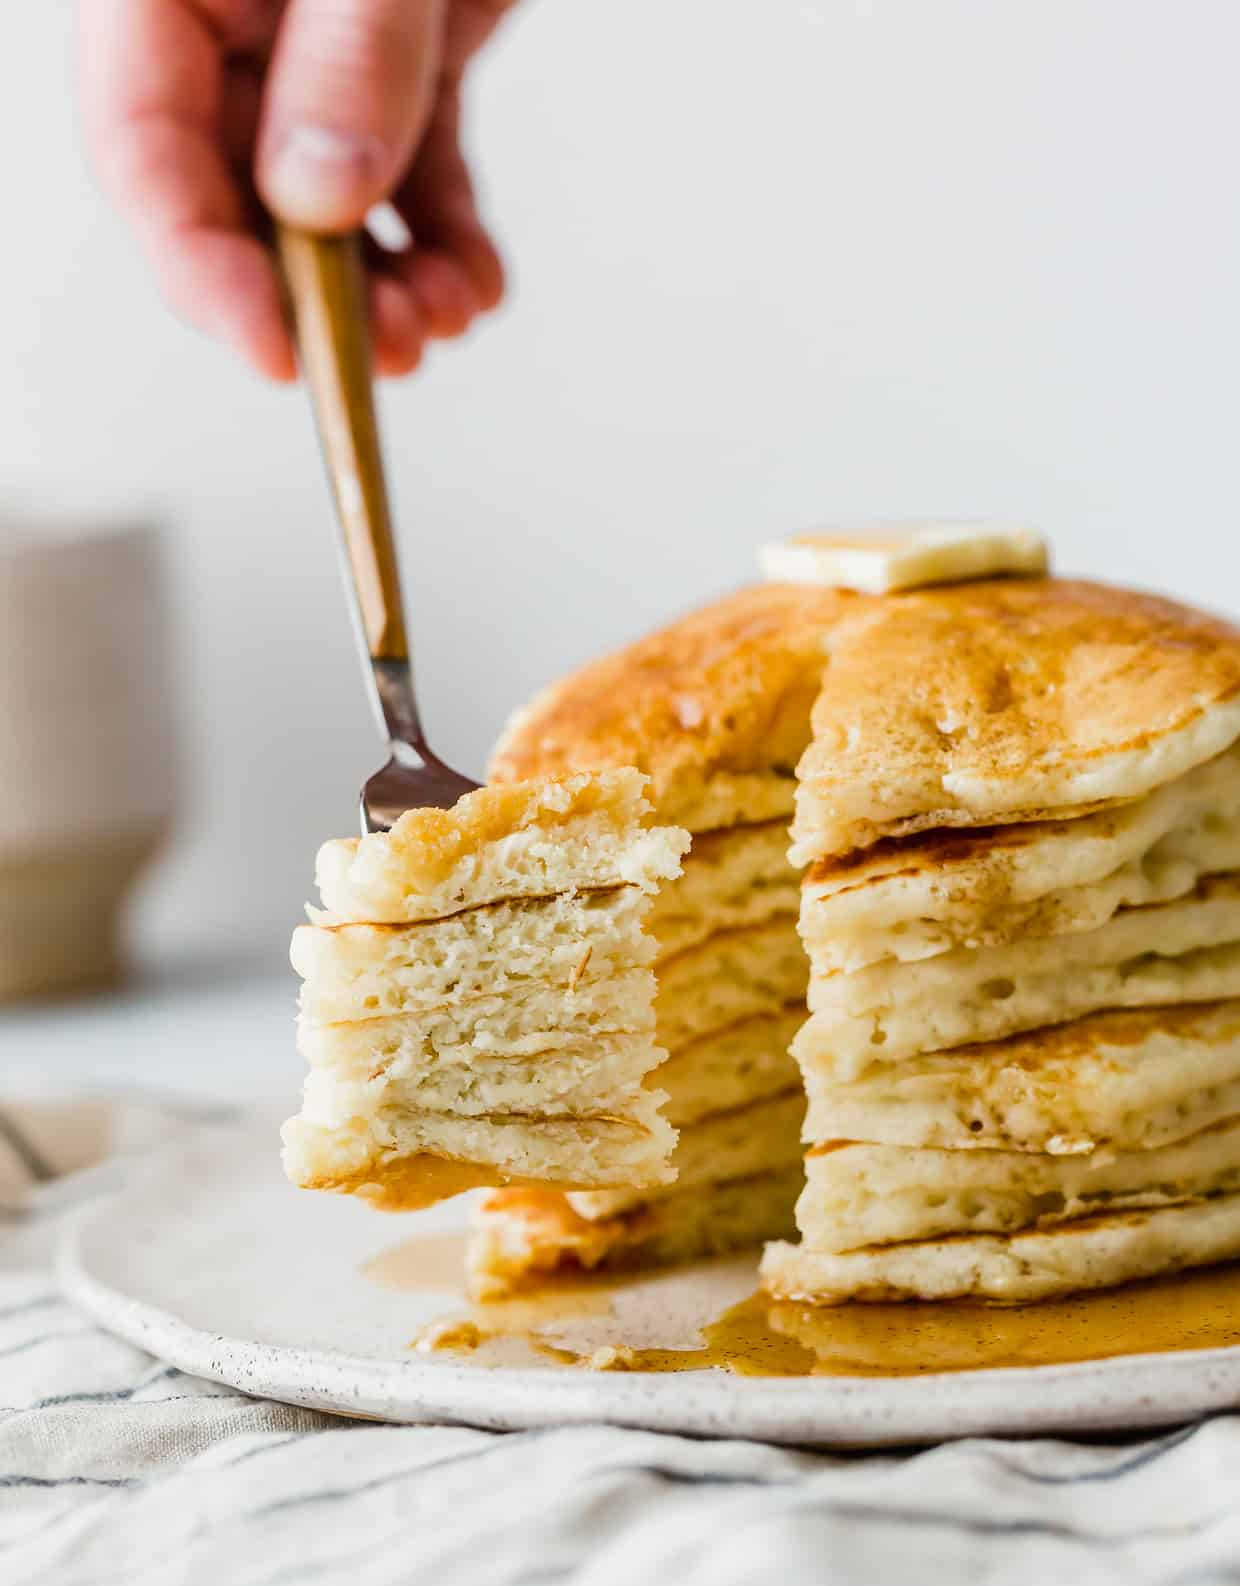 A fork holding a bite of pancake, with a stack of pancakes in the background.